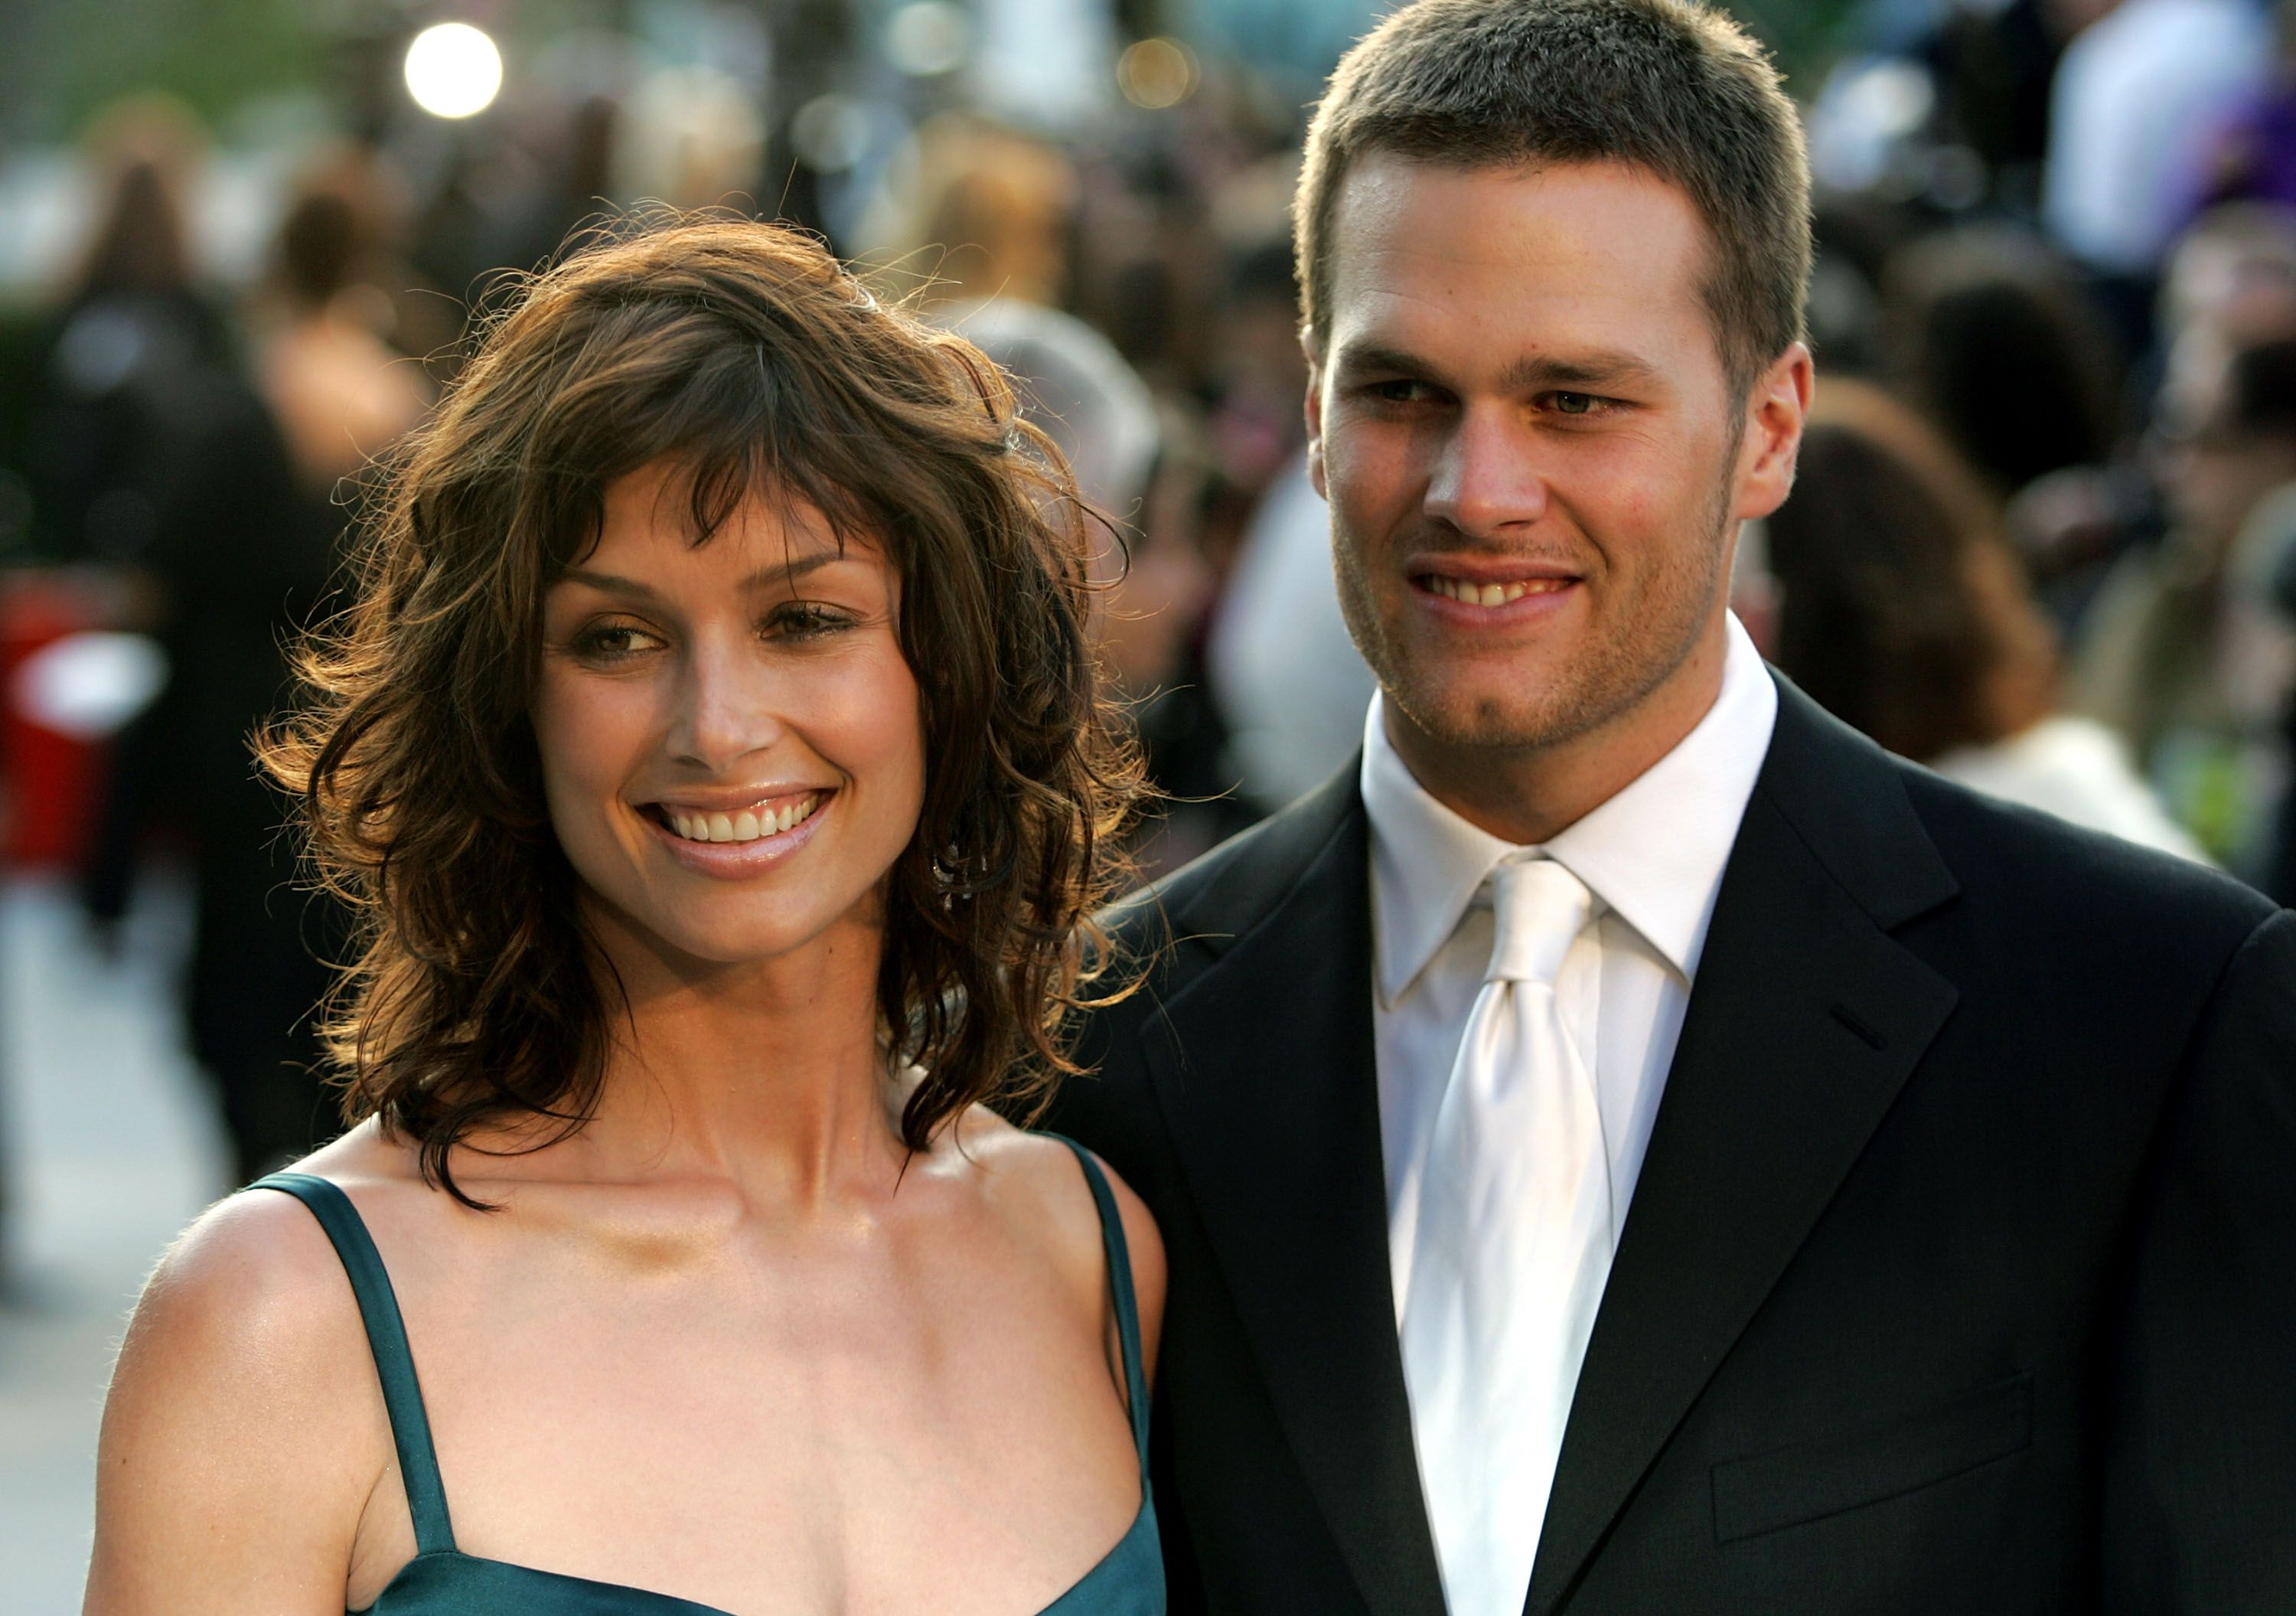 Bridget Moynahan and Tom Brady at the Vanity Fair Oscar Party at Mortons on February 27, 2005 | Photo: Getty Images